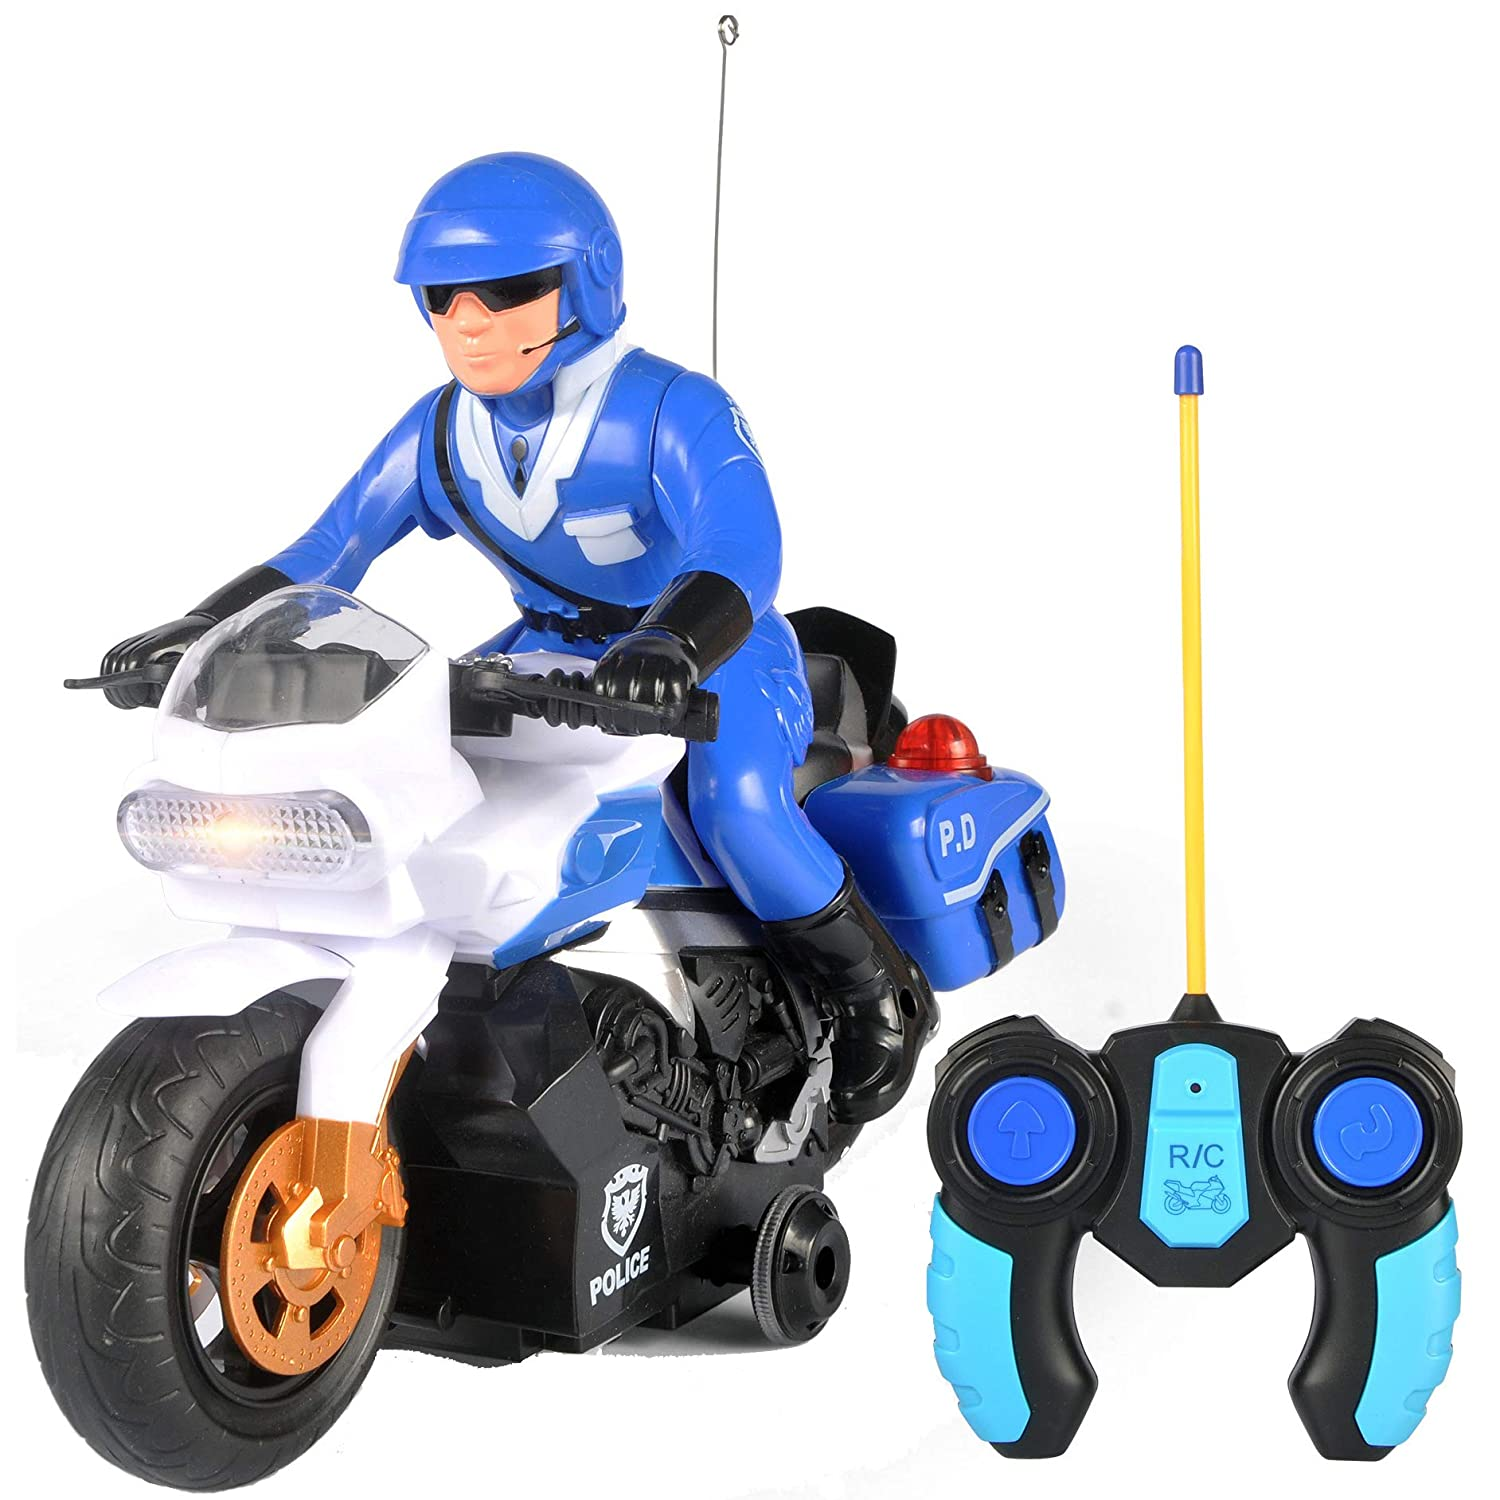 Liberty Imports RC Police Patrol Motorcycle